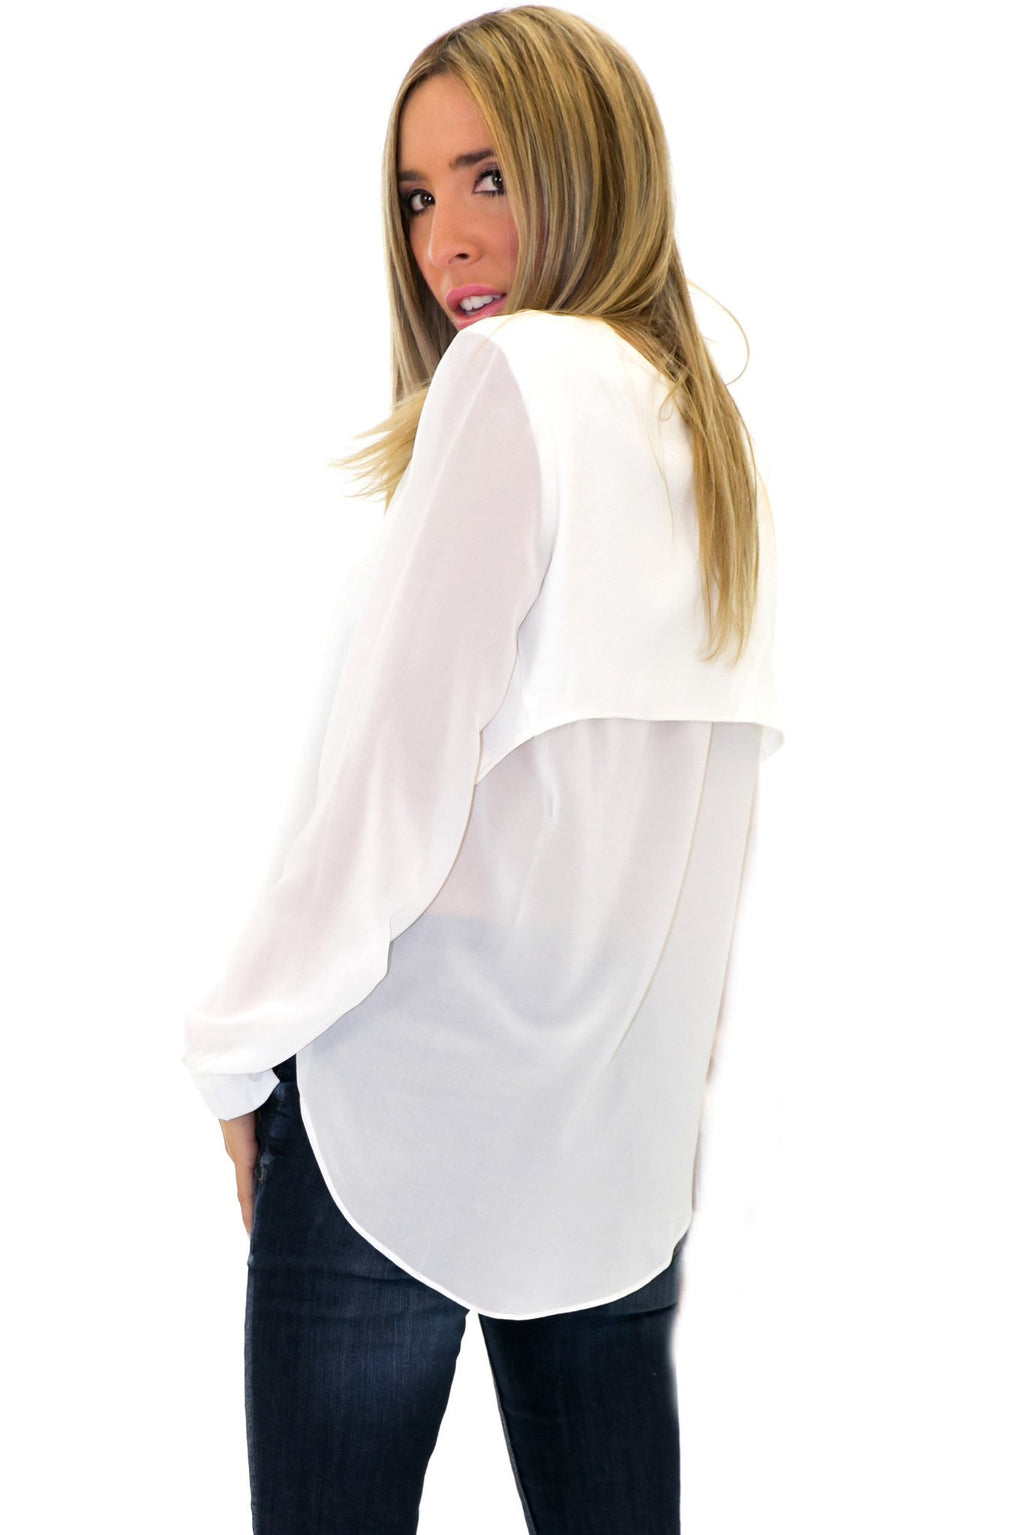 MOLI OPEN BACK CHIFFON BLOUSE - White - Haute & Rebellious